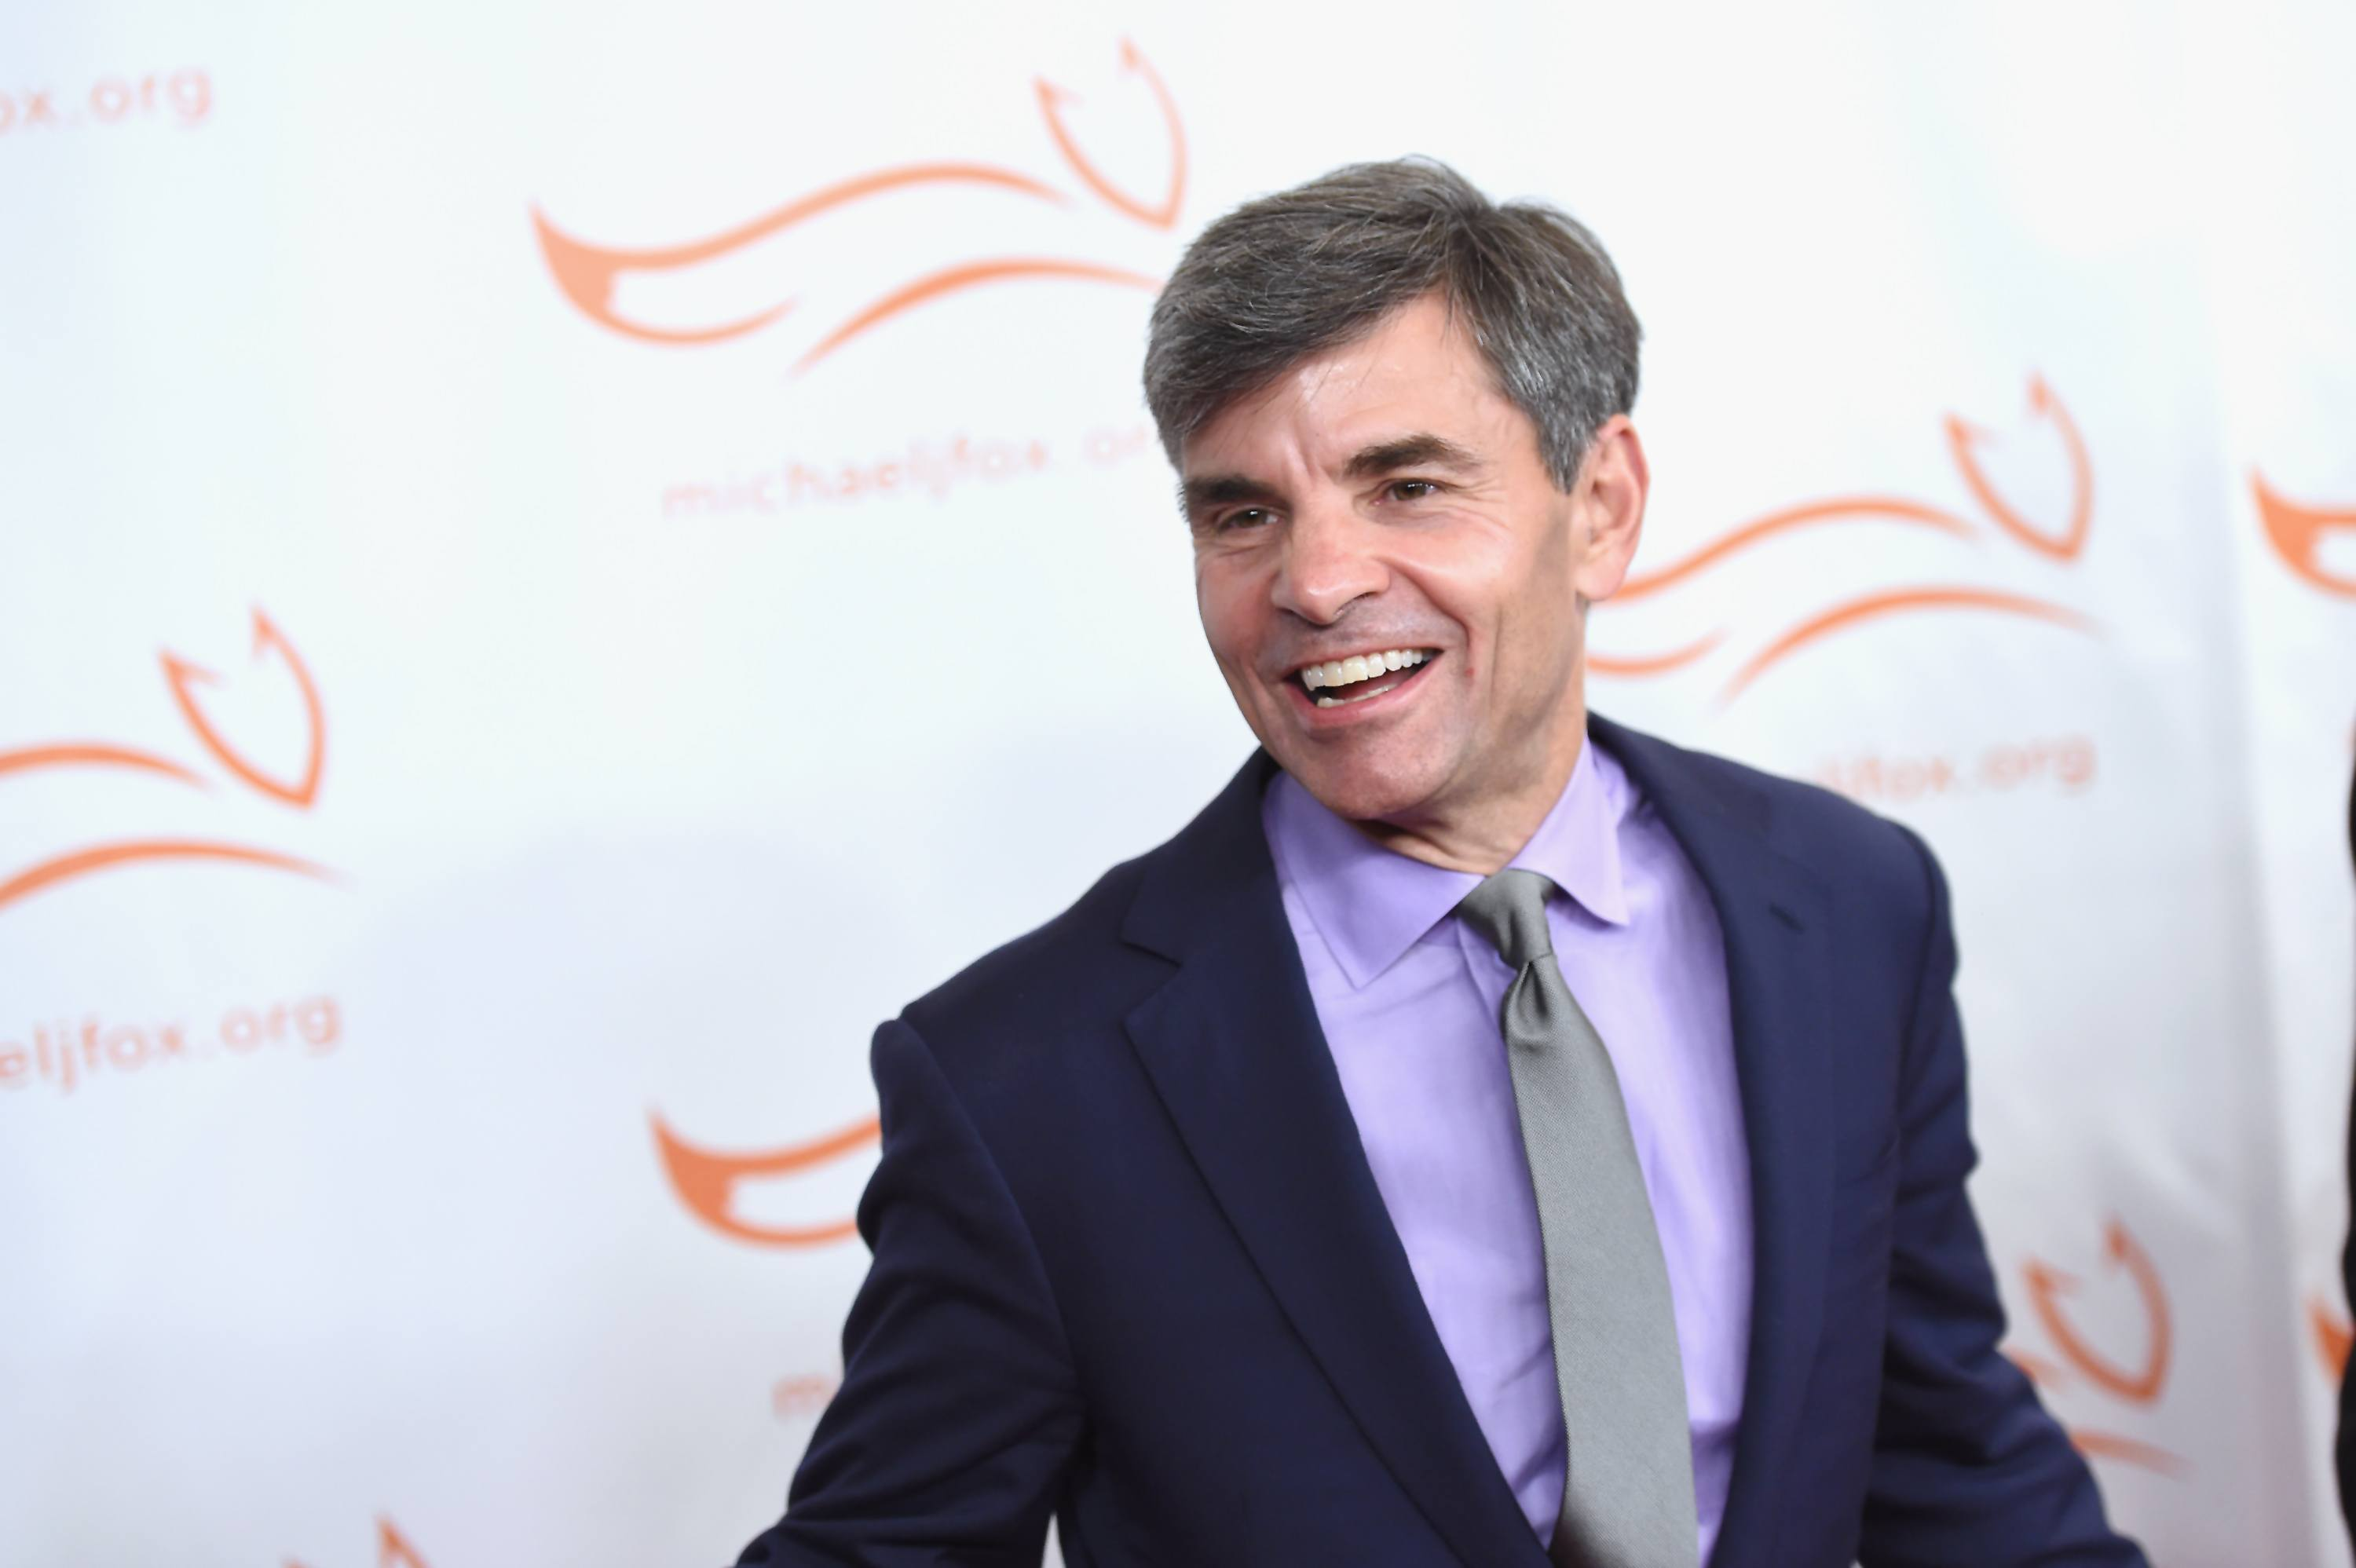 NEW YORK, NY - NOVEMBER 11: George Stephanopoulos on the red carpet of A Funny Thing Happened On The Way To Cure Parkinson's benefitting The Michael J. Fox Foundation at the Hilton New York on November 11, 2017. (Photo by Nicholas Hunt/Getty Images)